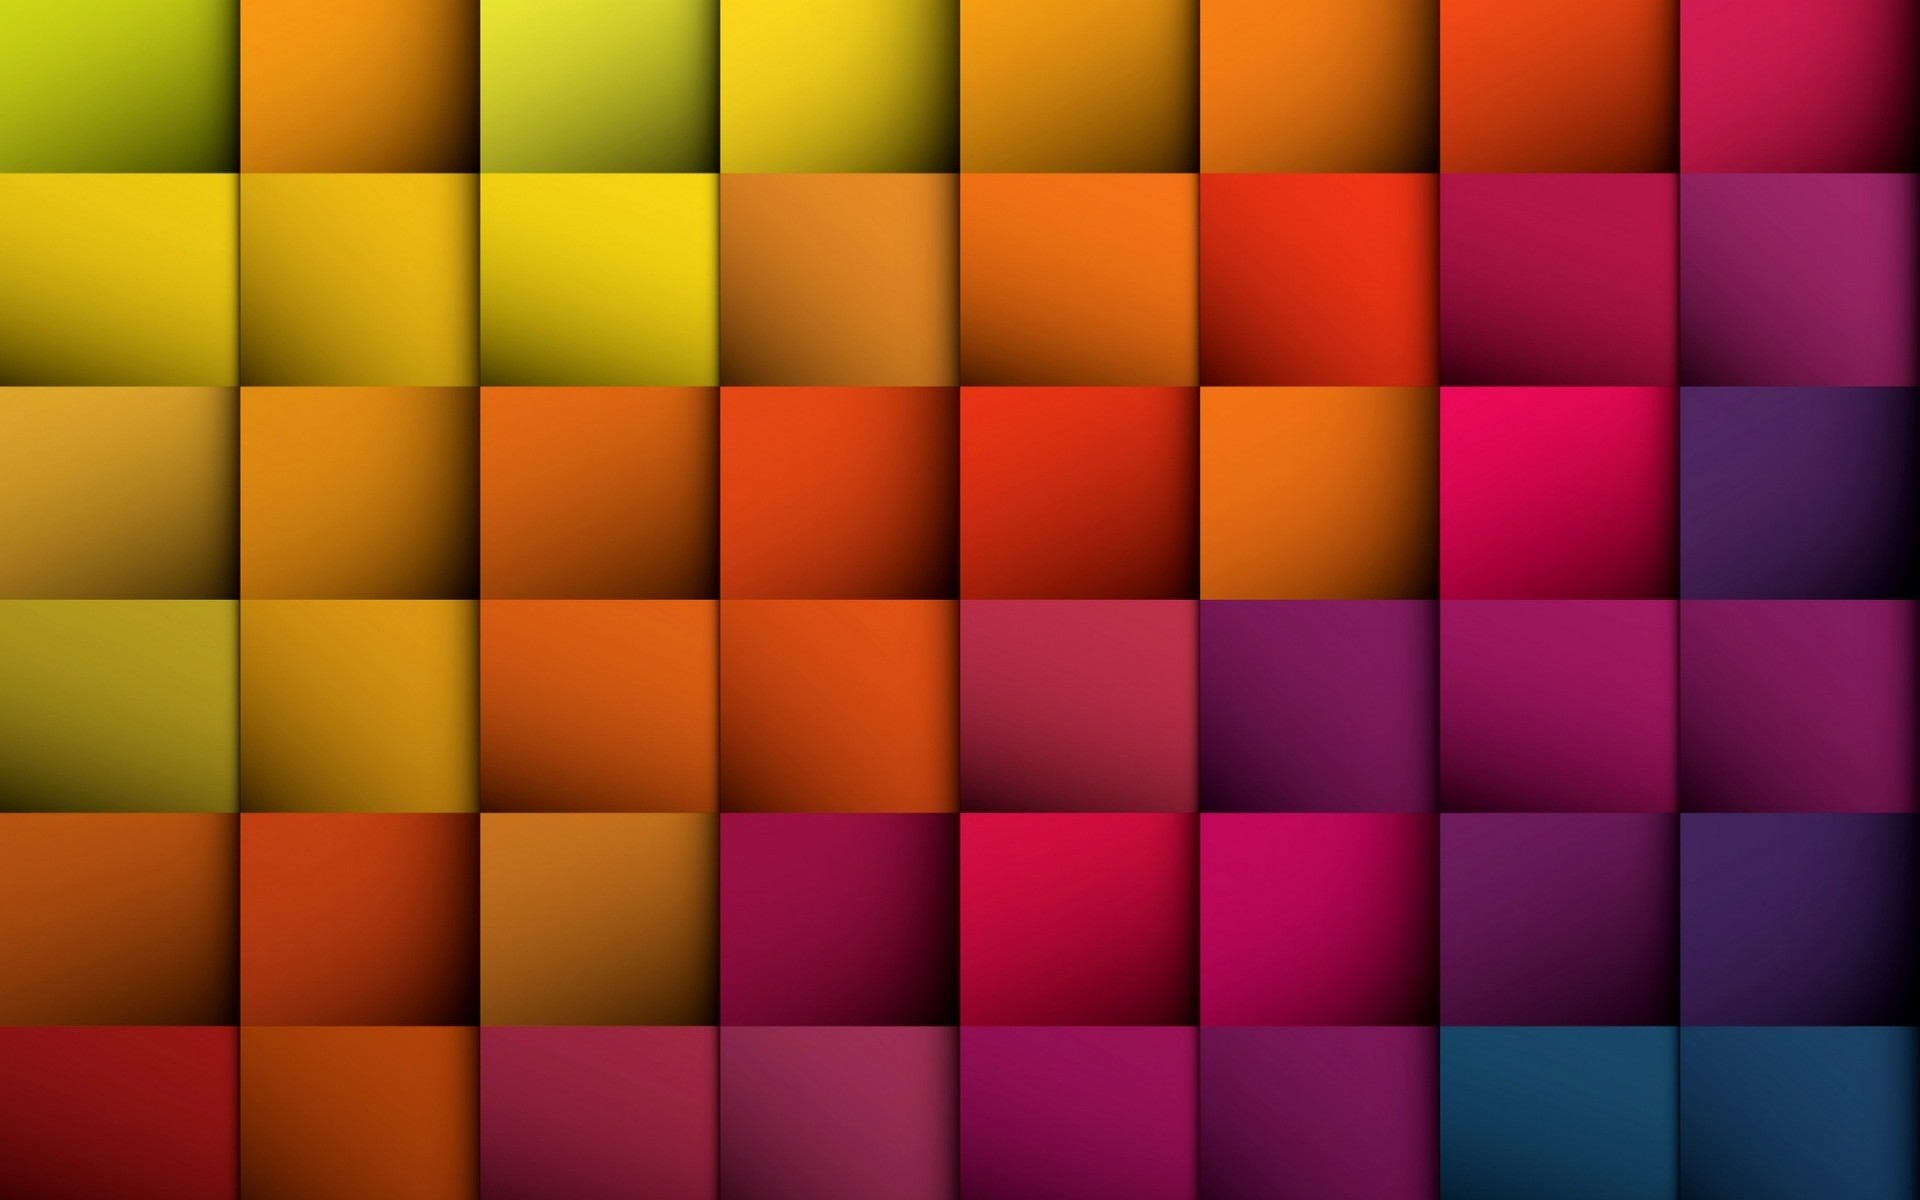 Res: 1920x1200, 3d color checks walls hd wallpapers background photos download free best  windows apple display picture